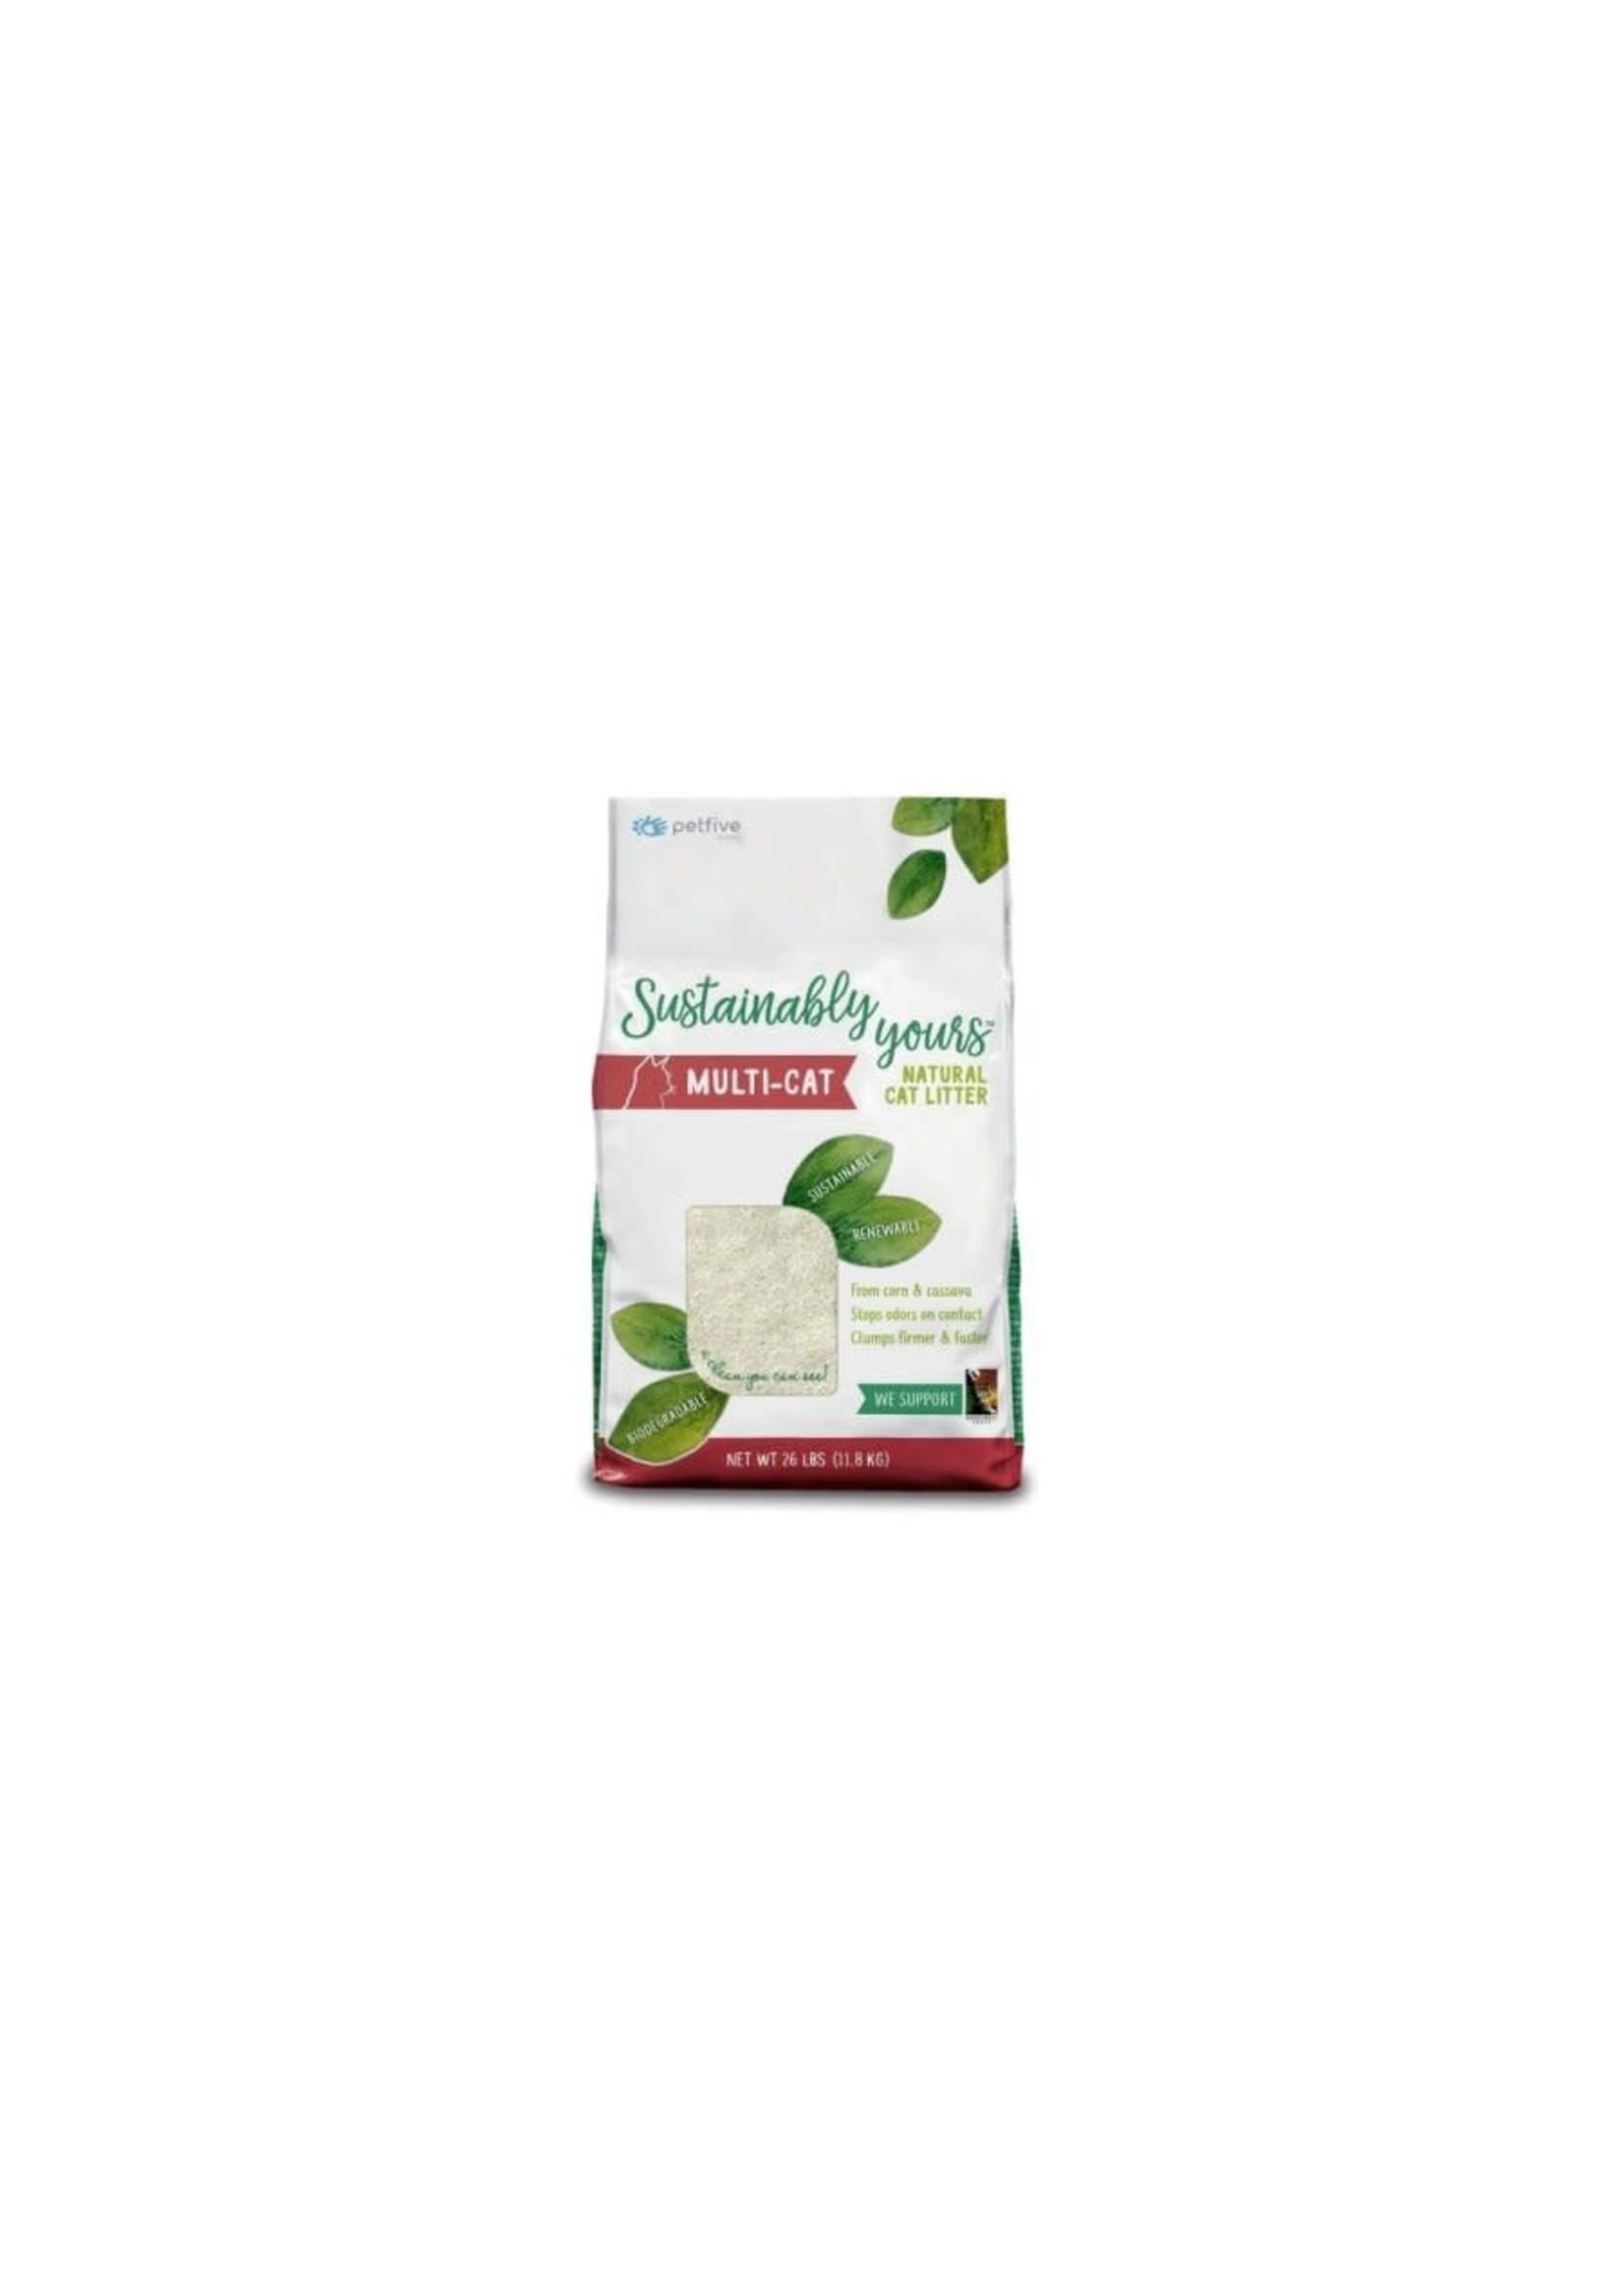 Sustainably yours Sustainably yours litiere agglomérante biodégradable multi-cat 26 lbs